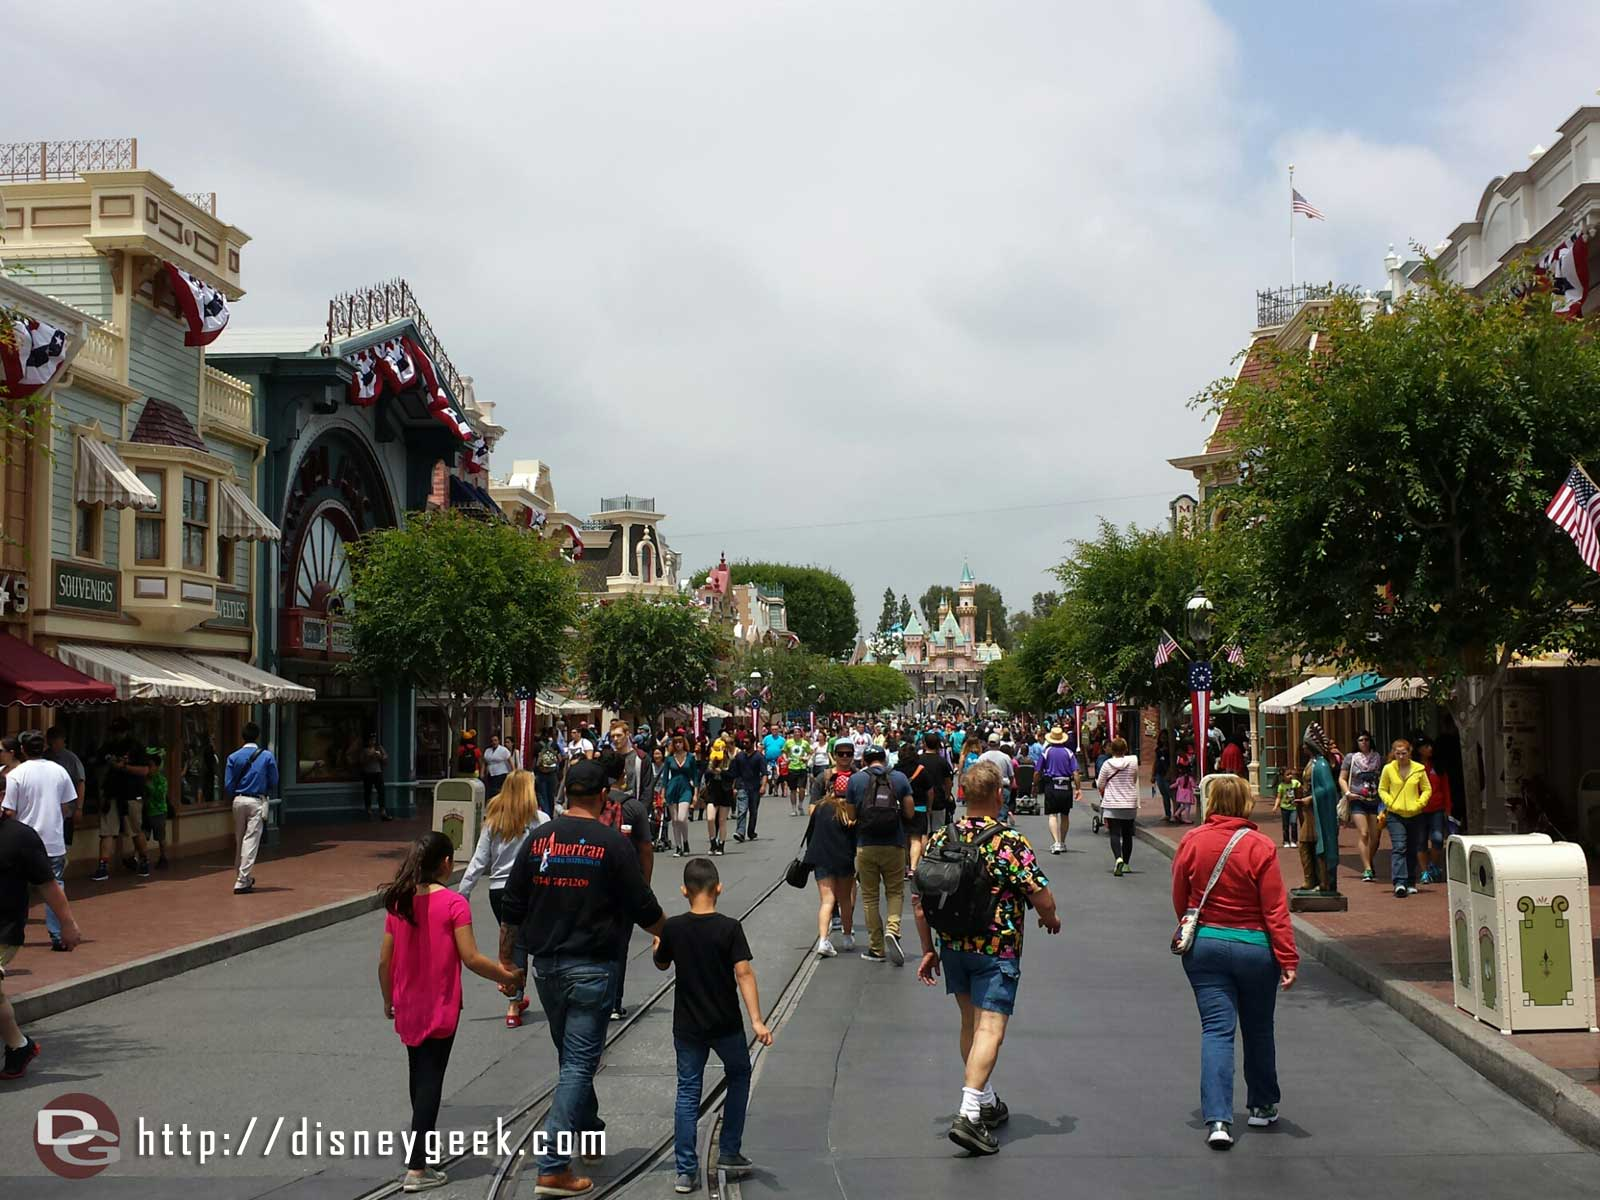 #Disneyland Main Street USA #Disney24  #DisneySide